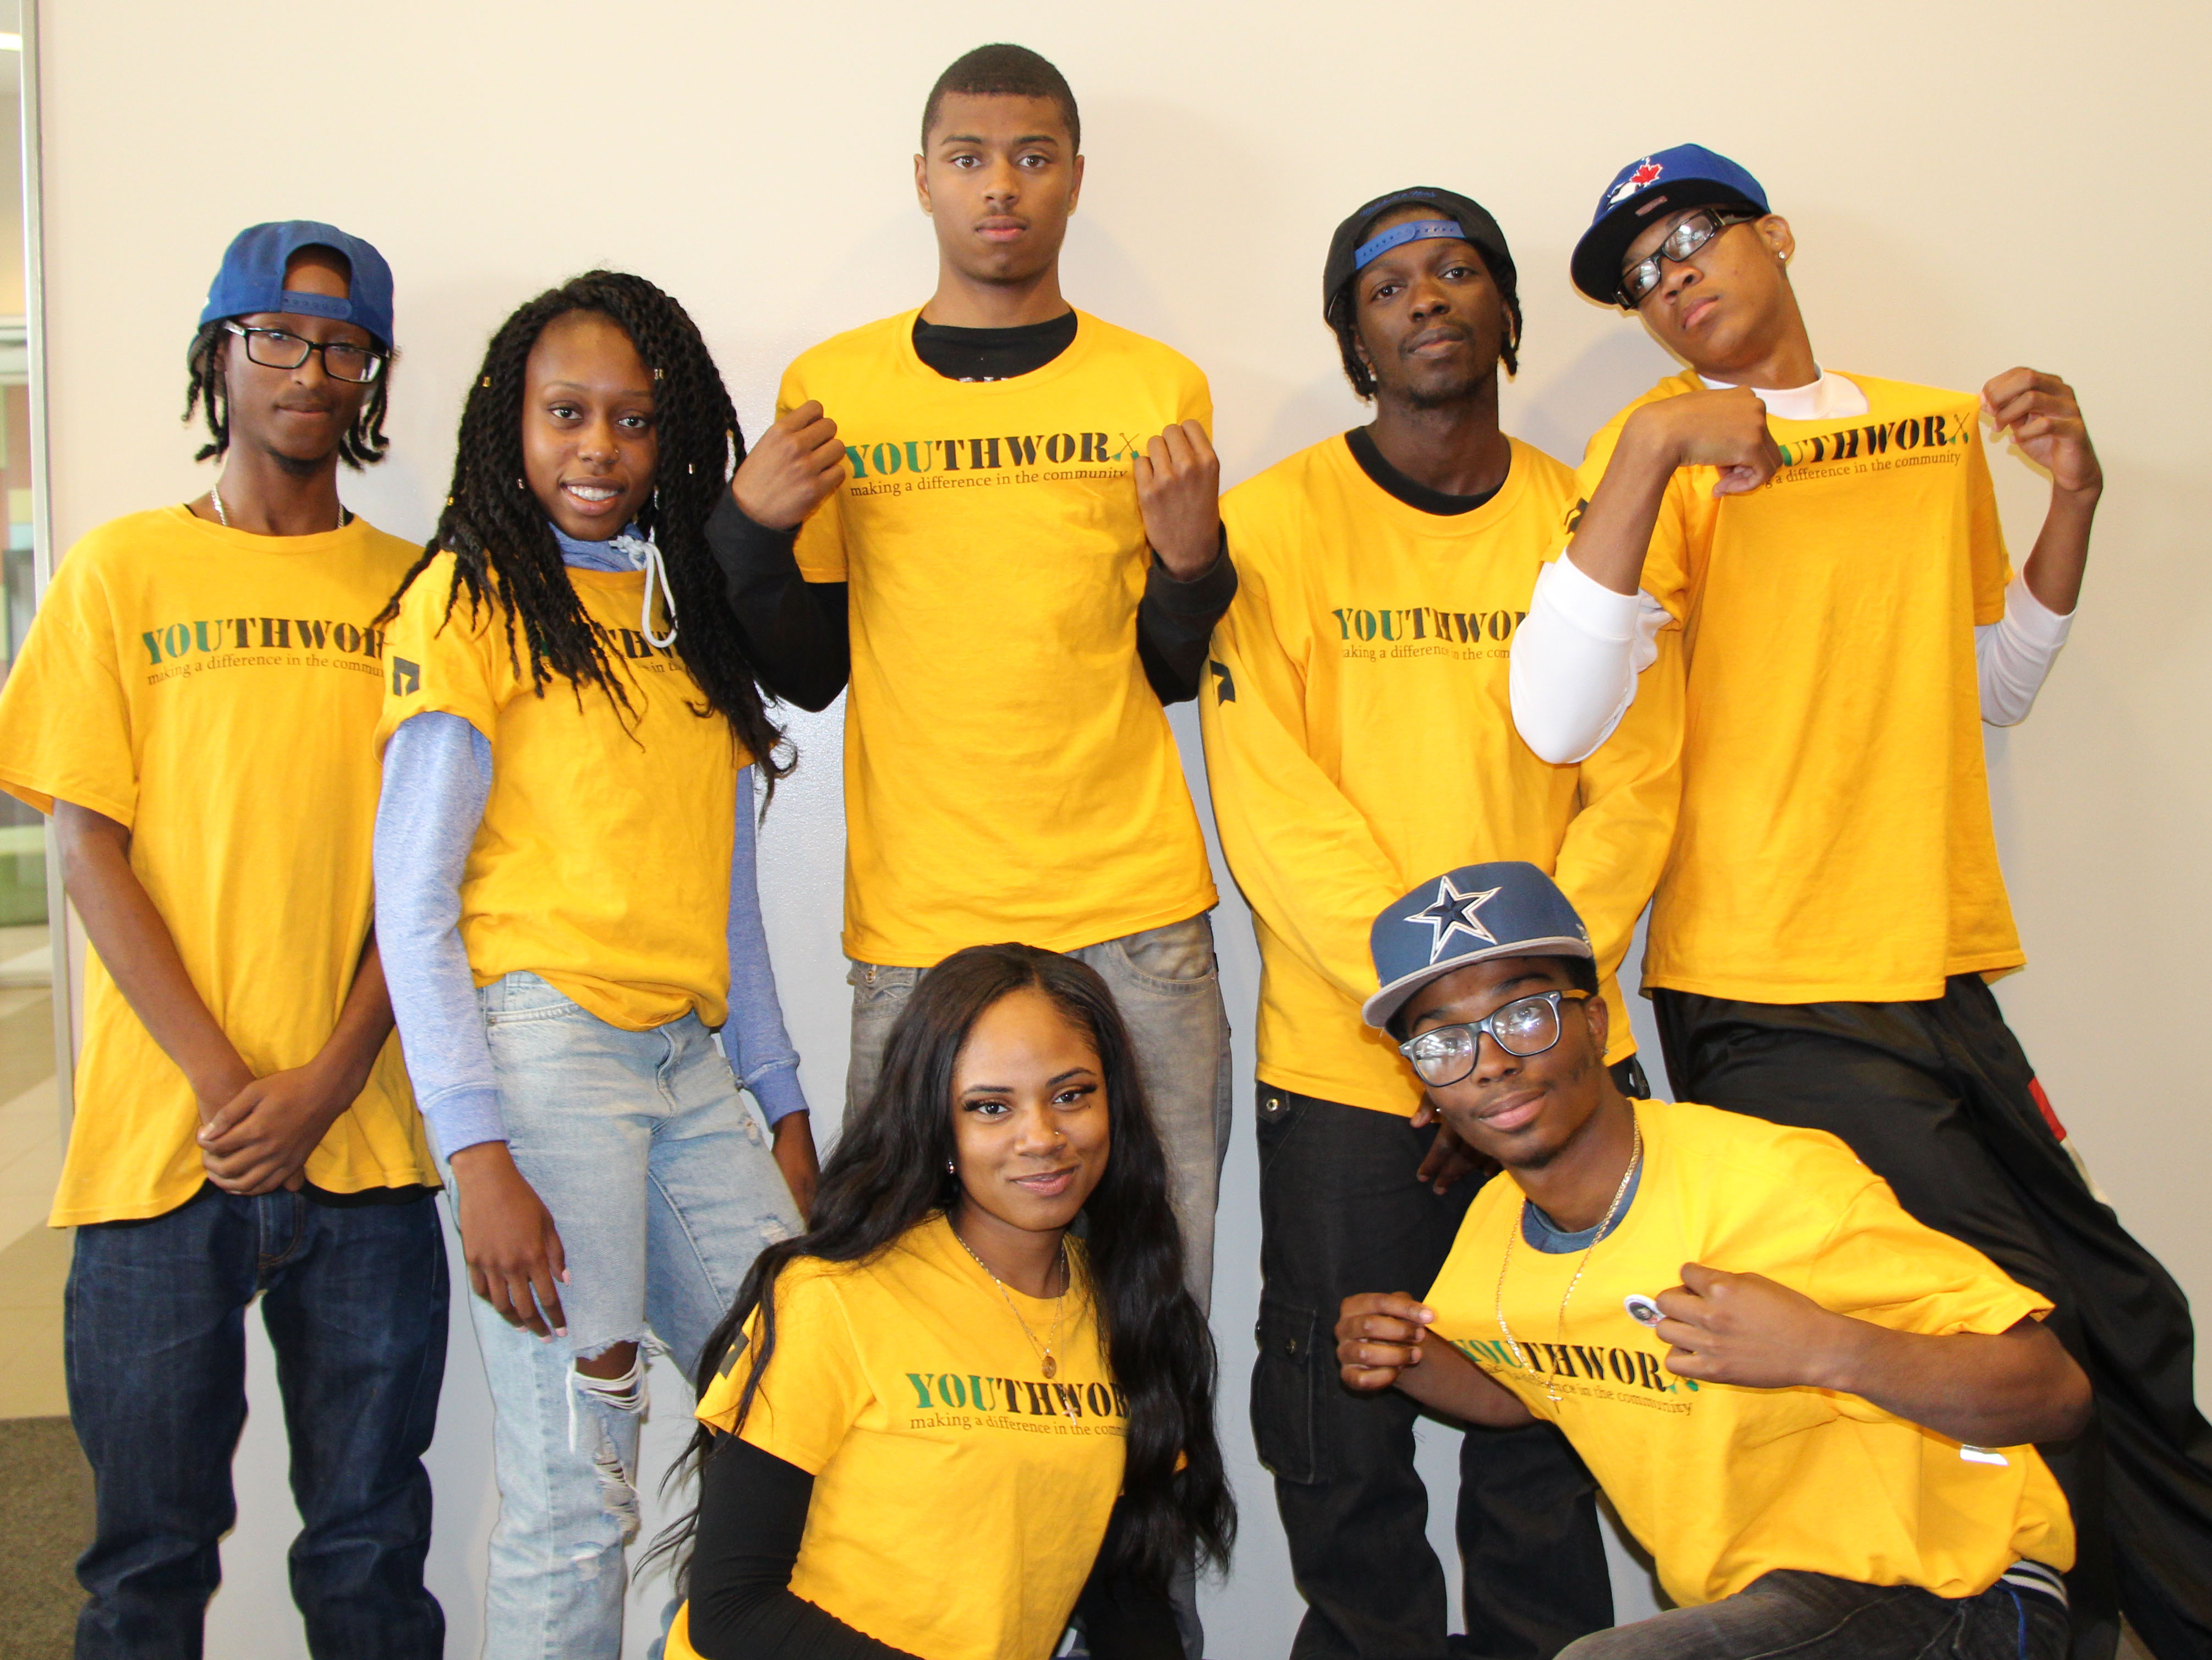 YouthWorx participants in their yellow t-shirts at the final training day for YouthWorx 2015